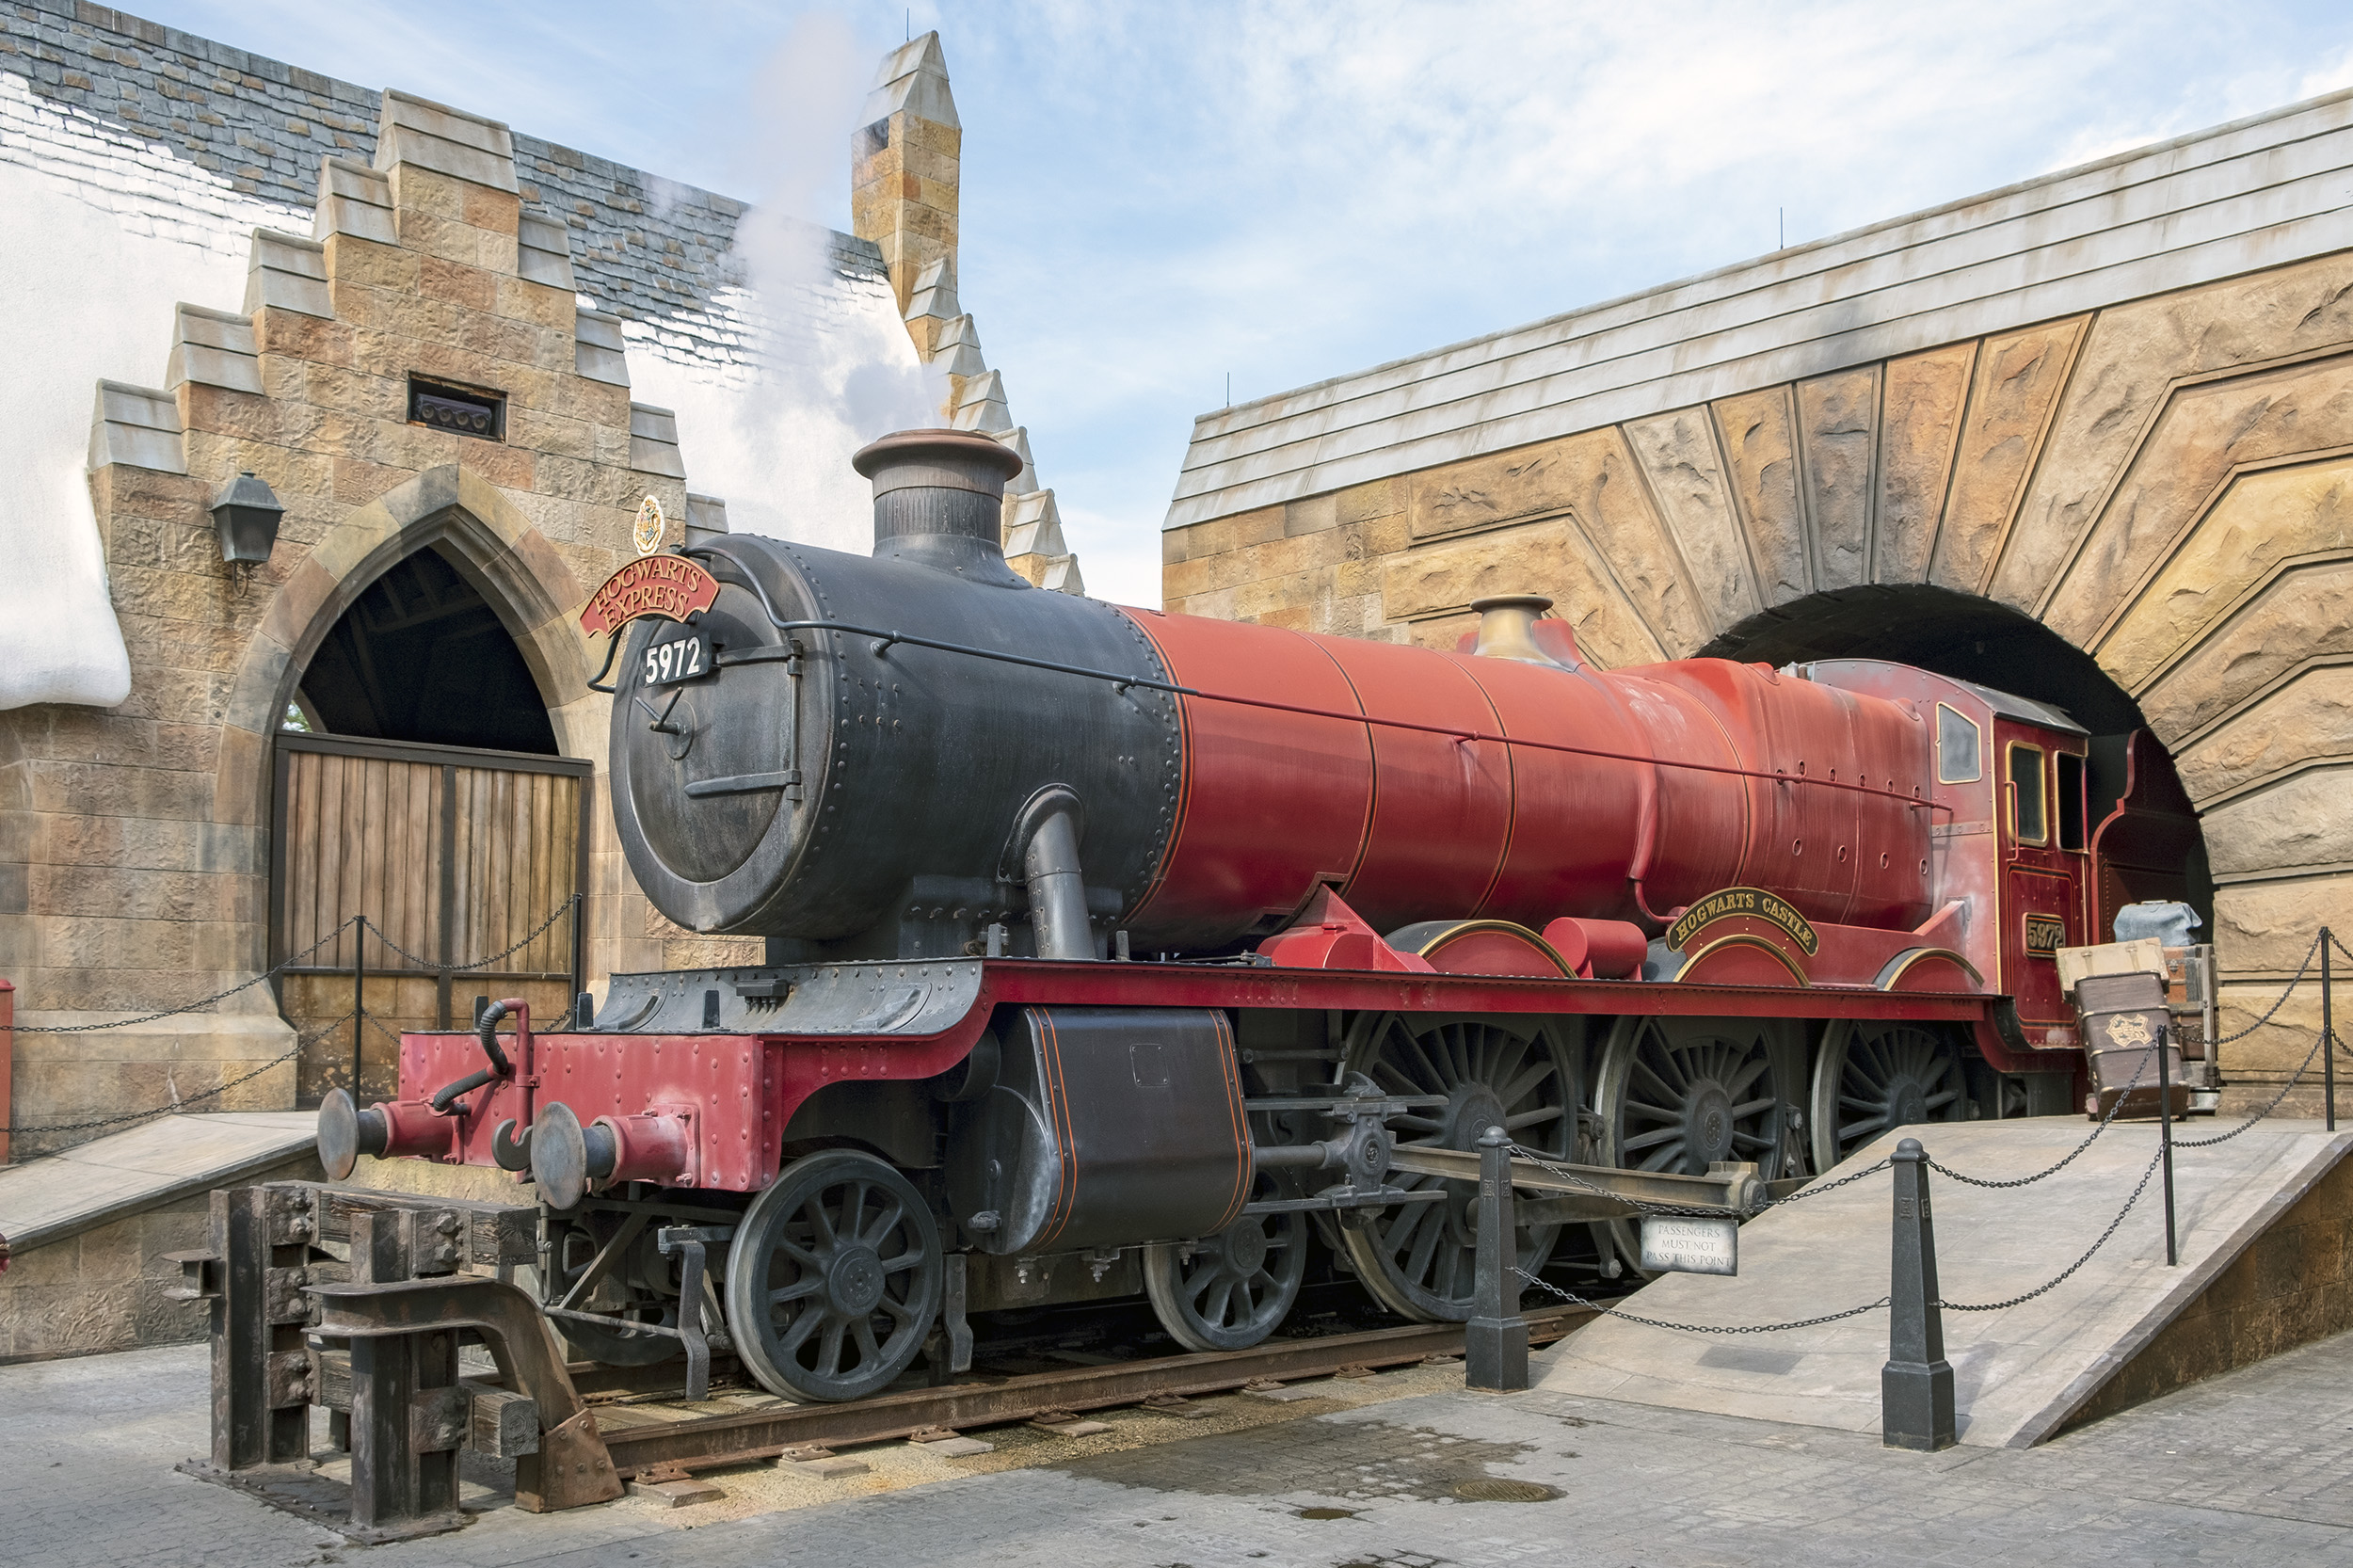 Hogwarts Express Hogsmeade Village The Wizarding World of Harry Potter Orlando